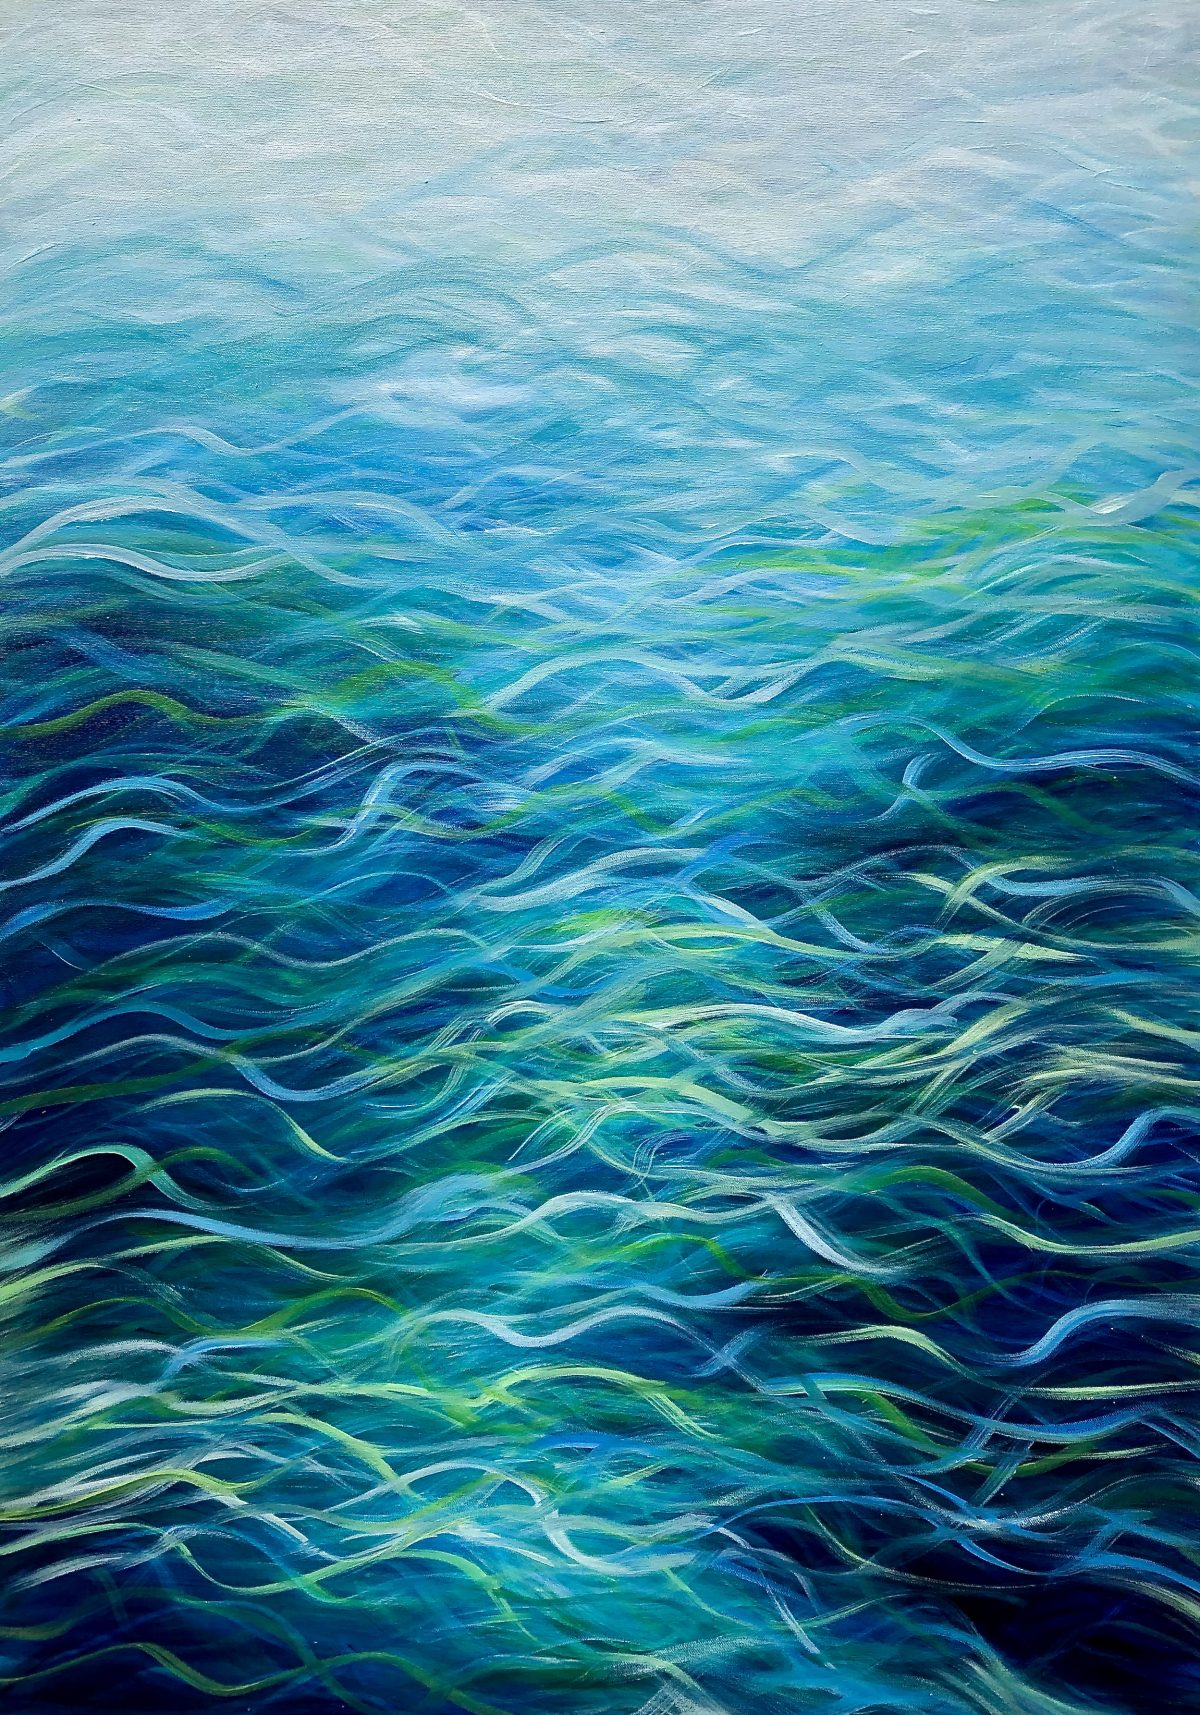 """Emerald Sea IV"" oil on canvas painting blues emerald green abstract tropical seas. Measures 70 x 100 cm £395. Available at catherinekennedy.co.uk. Positive energy painting."